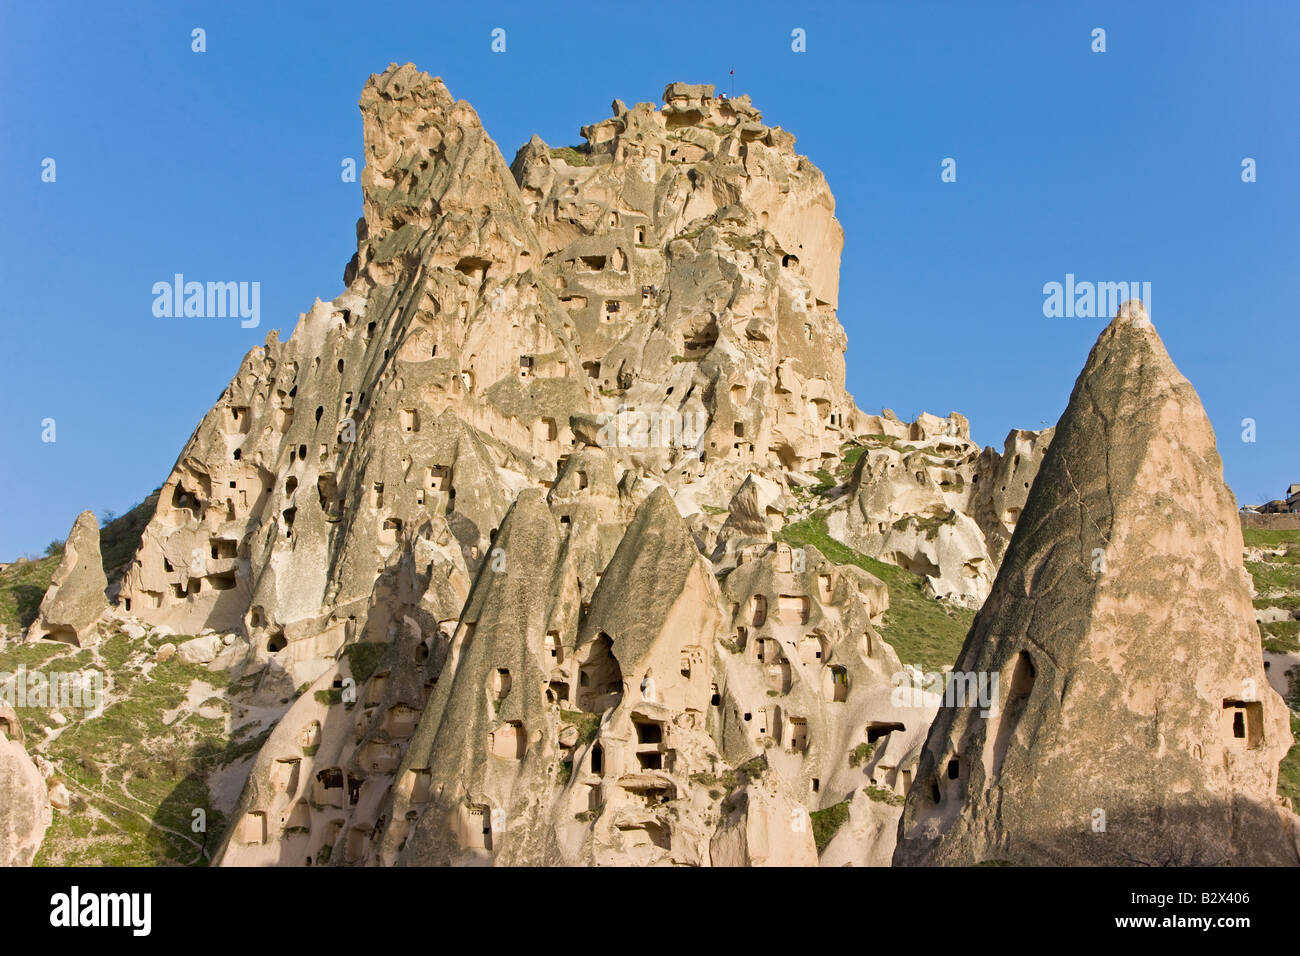 Old troglodytic cave dwellings and the rock Castle of Uchisar, Cappadocia, Anatolia, Turkey, Asia Minor, Eurasia - Stock Image